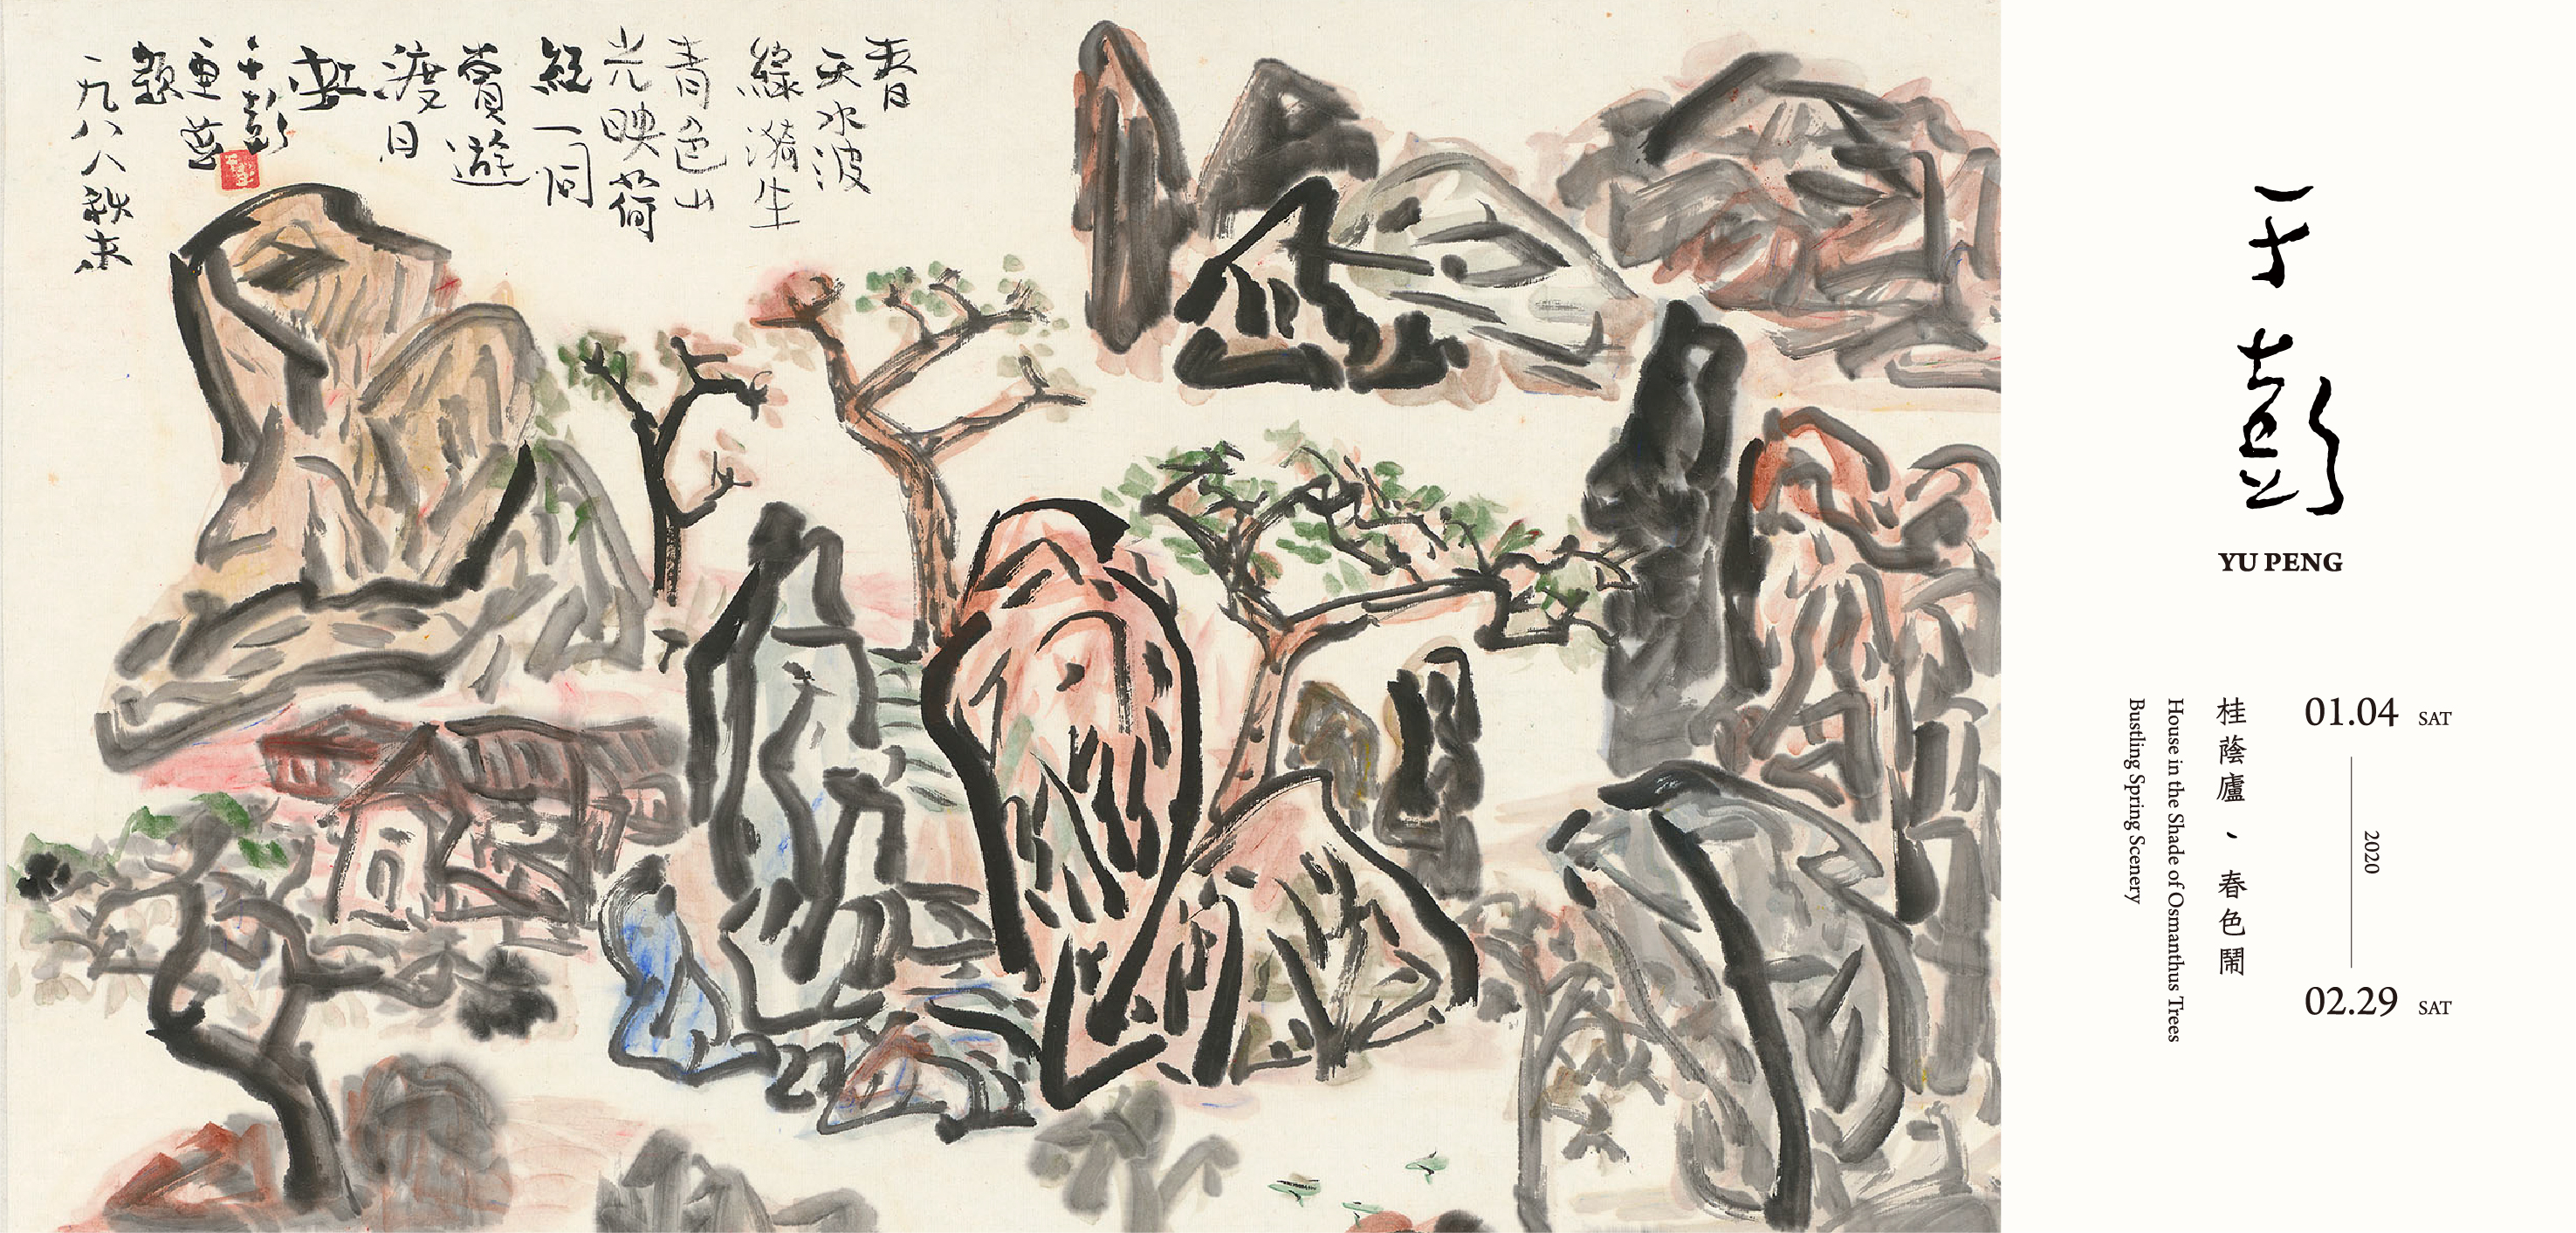 House in the Shade of Osmanthus Trees · Bustling Spring Scenery – Yu Peng